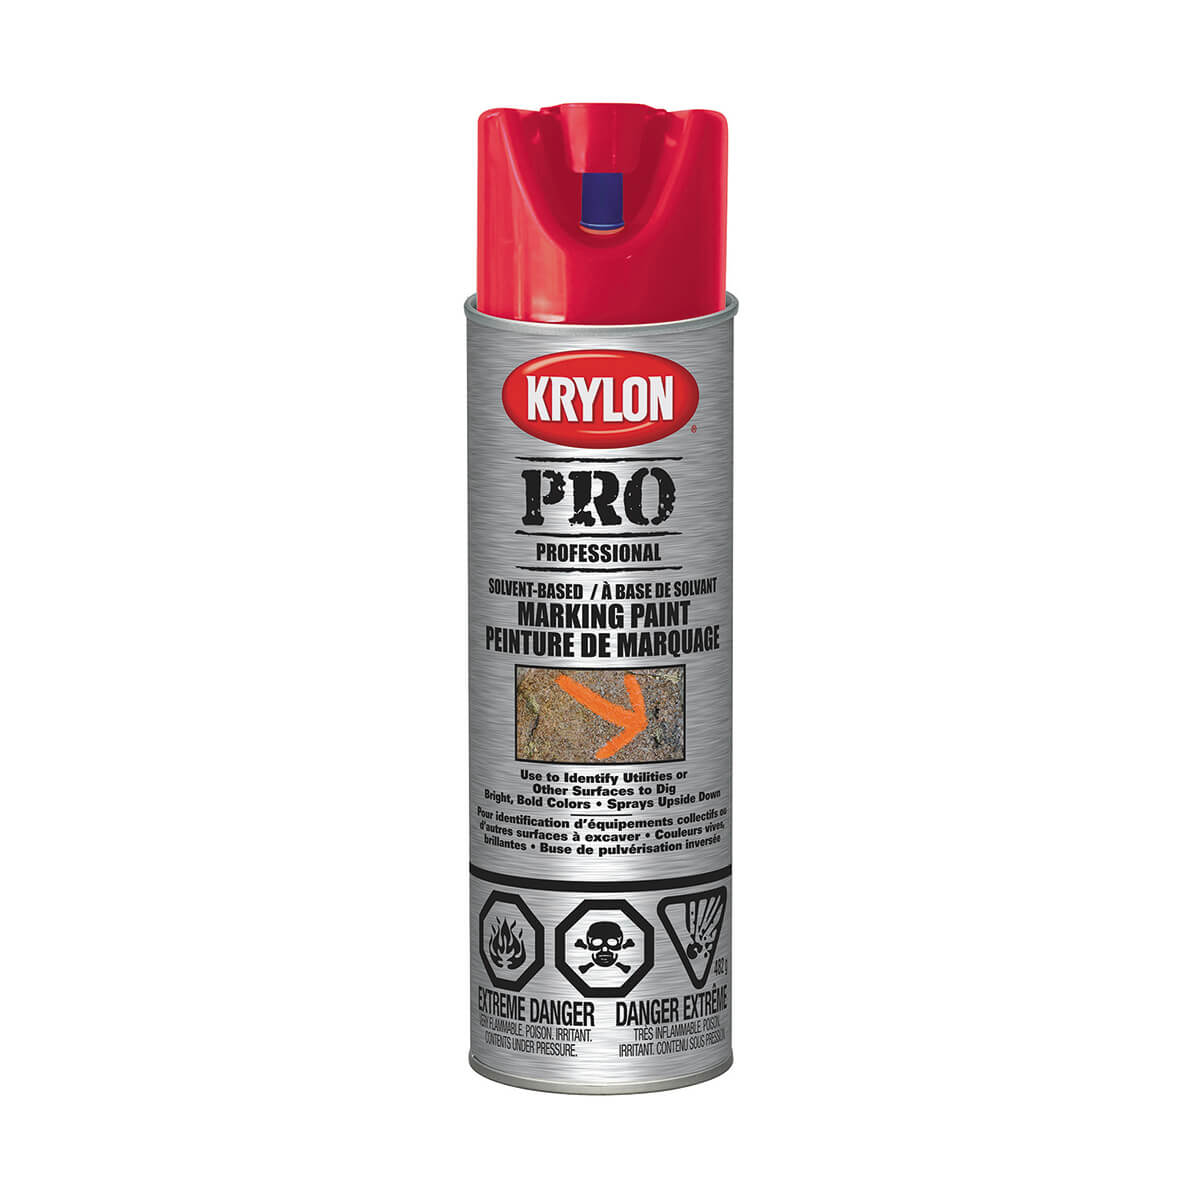 Krylon Contractor marking paint, Solvent based APWA Red - 482 g